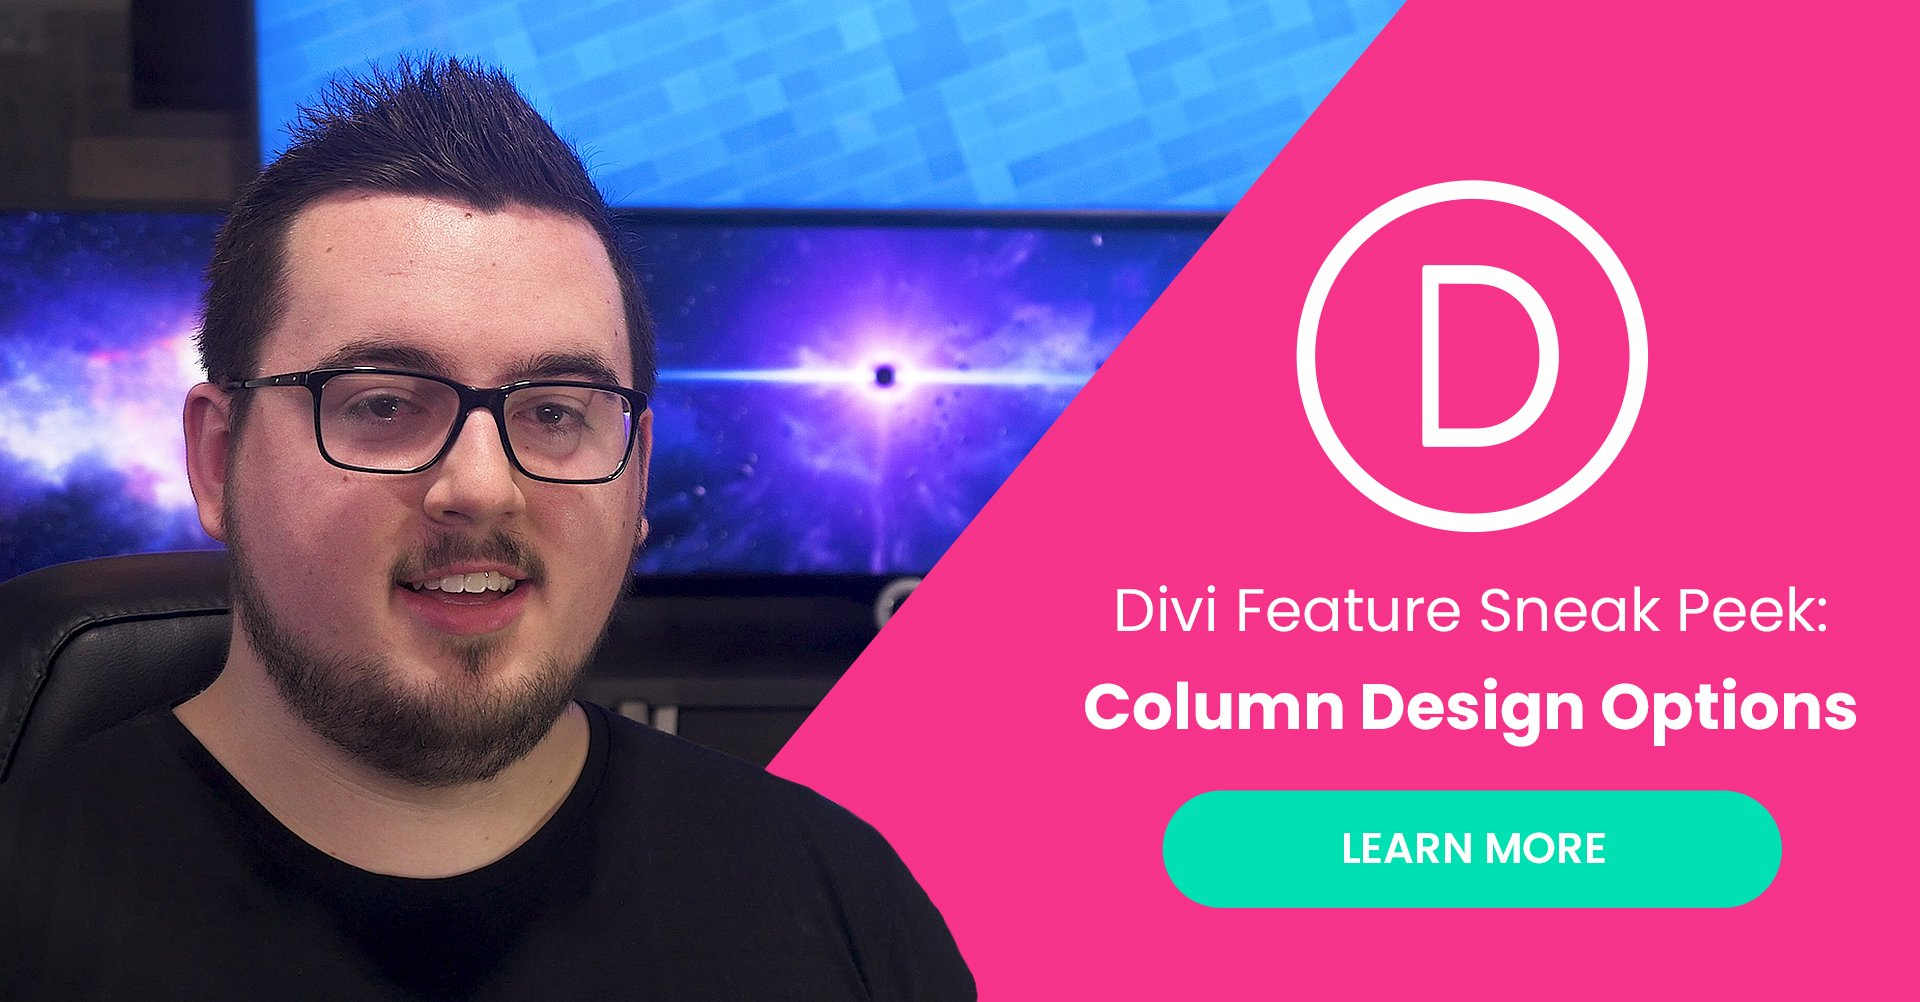 Divi Feature Sneak Peek: Column Design Options